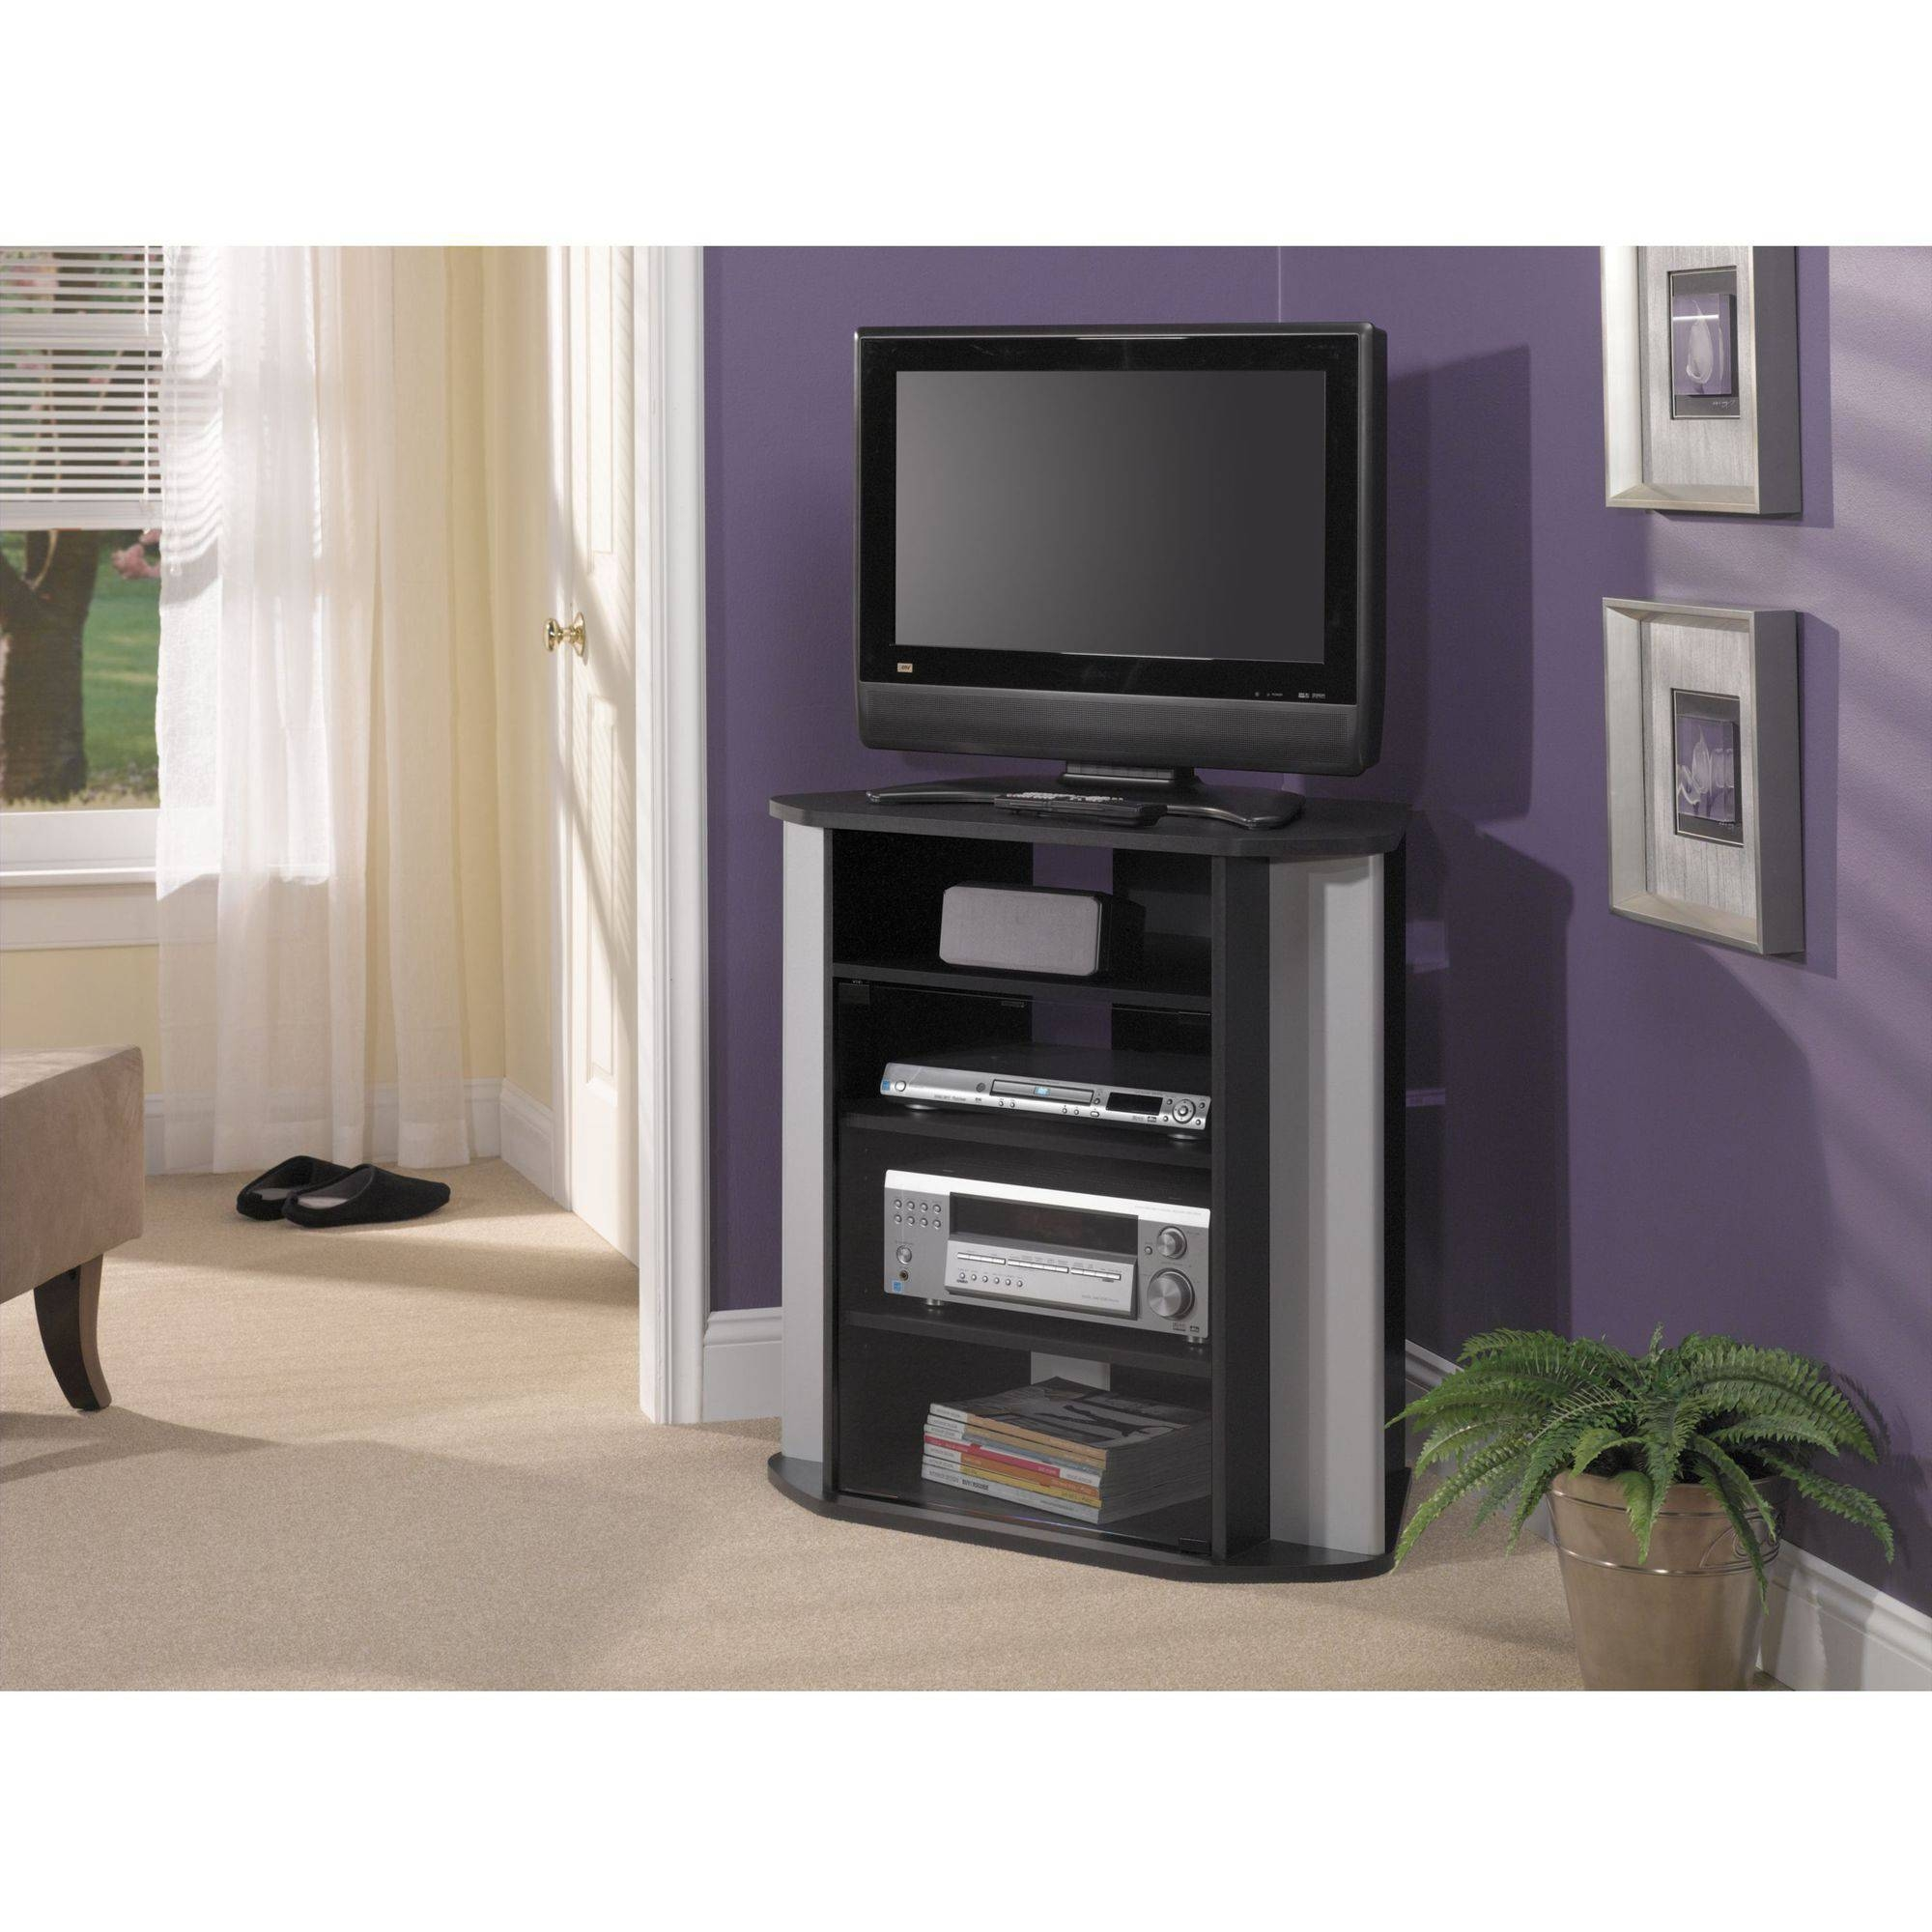 Bush Visions Black Tall Corner Tv Stand For Tvs Up To Hooker Pertaining To Corner Tv Stands With Drawers (View 5 of 15)